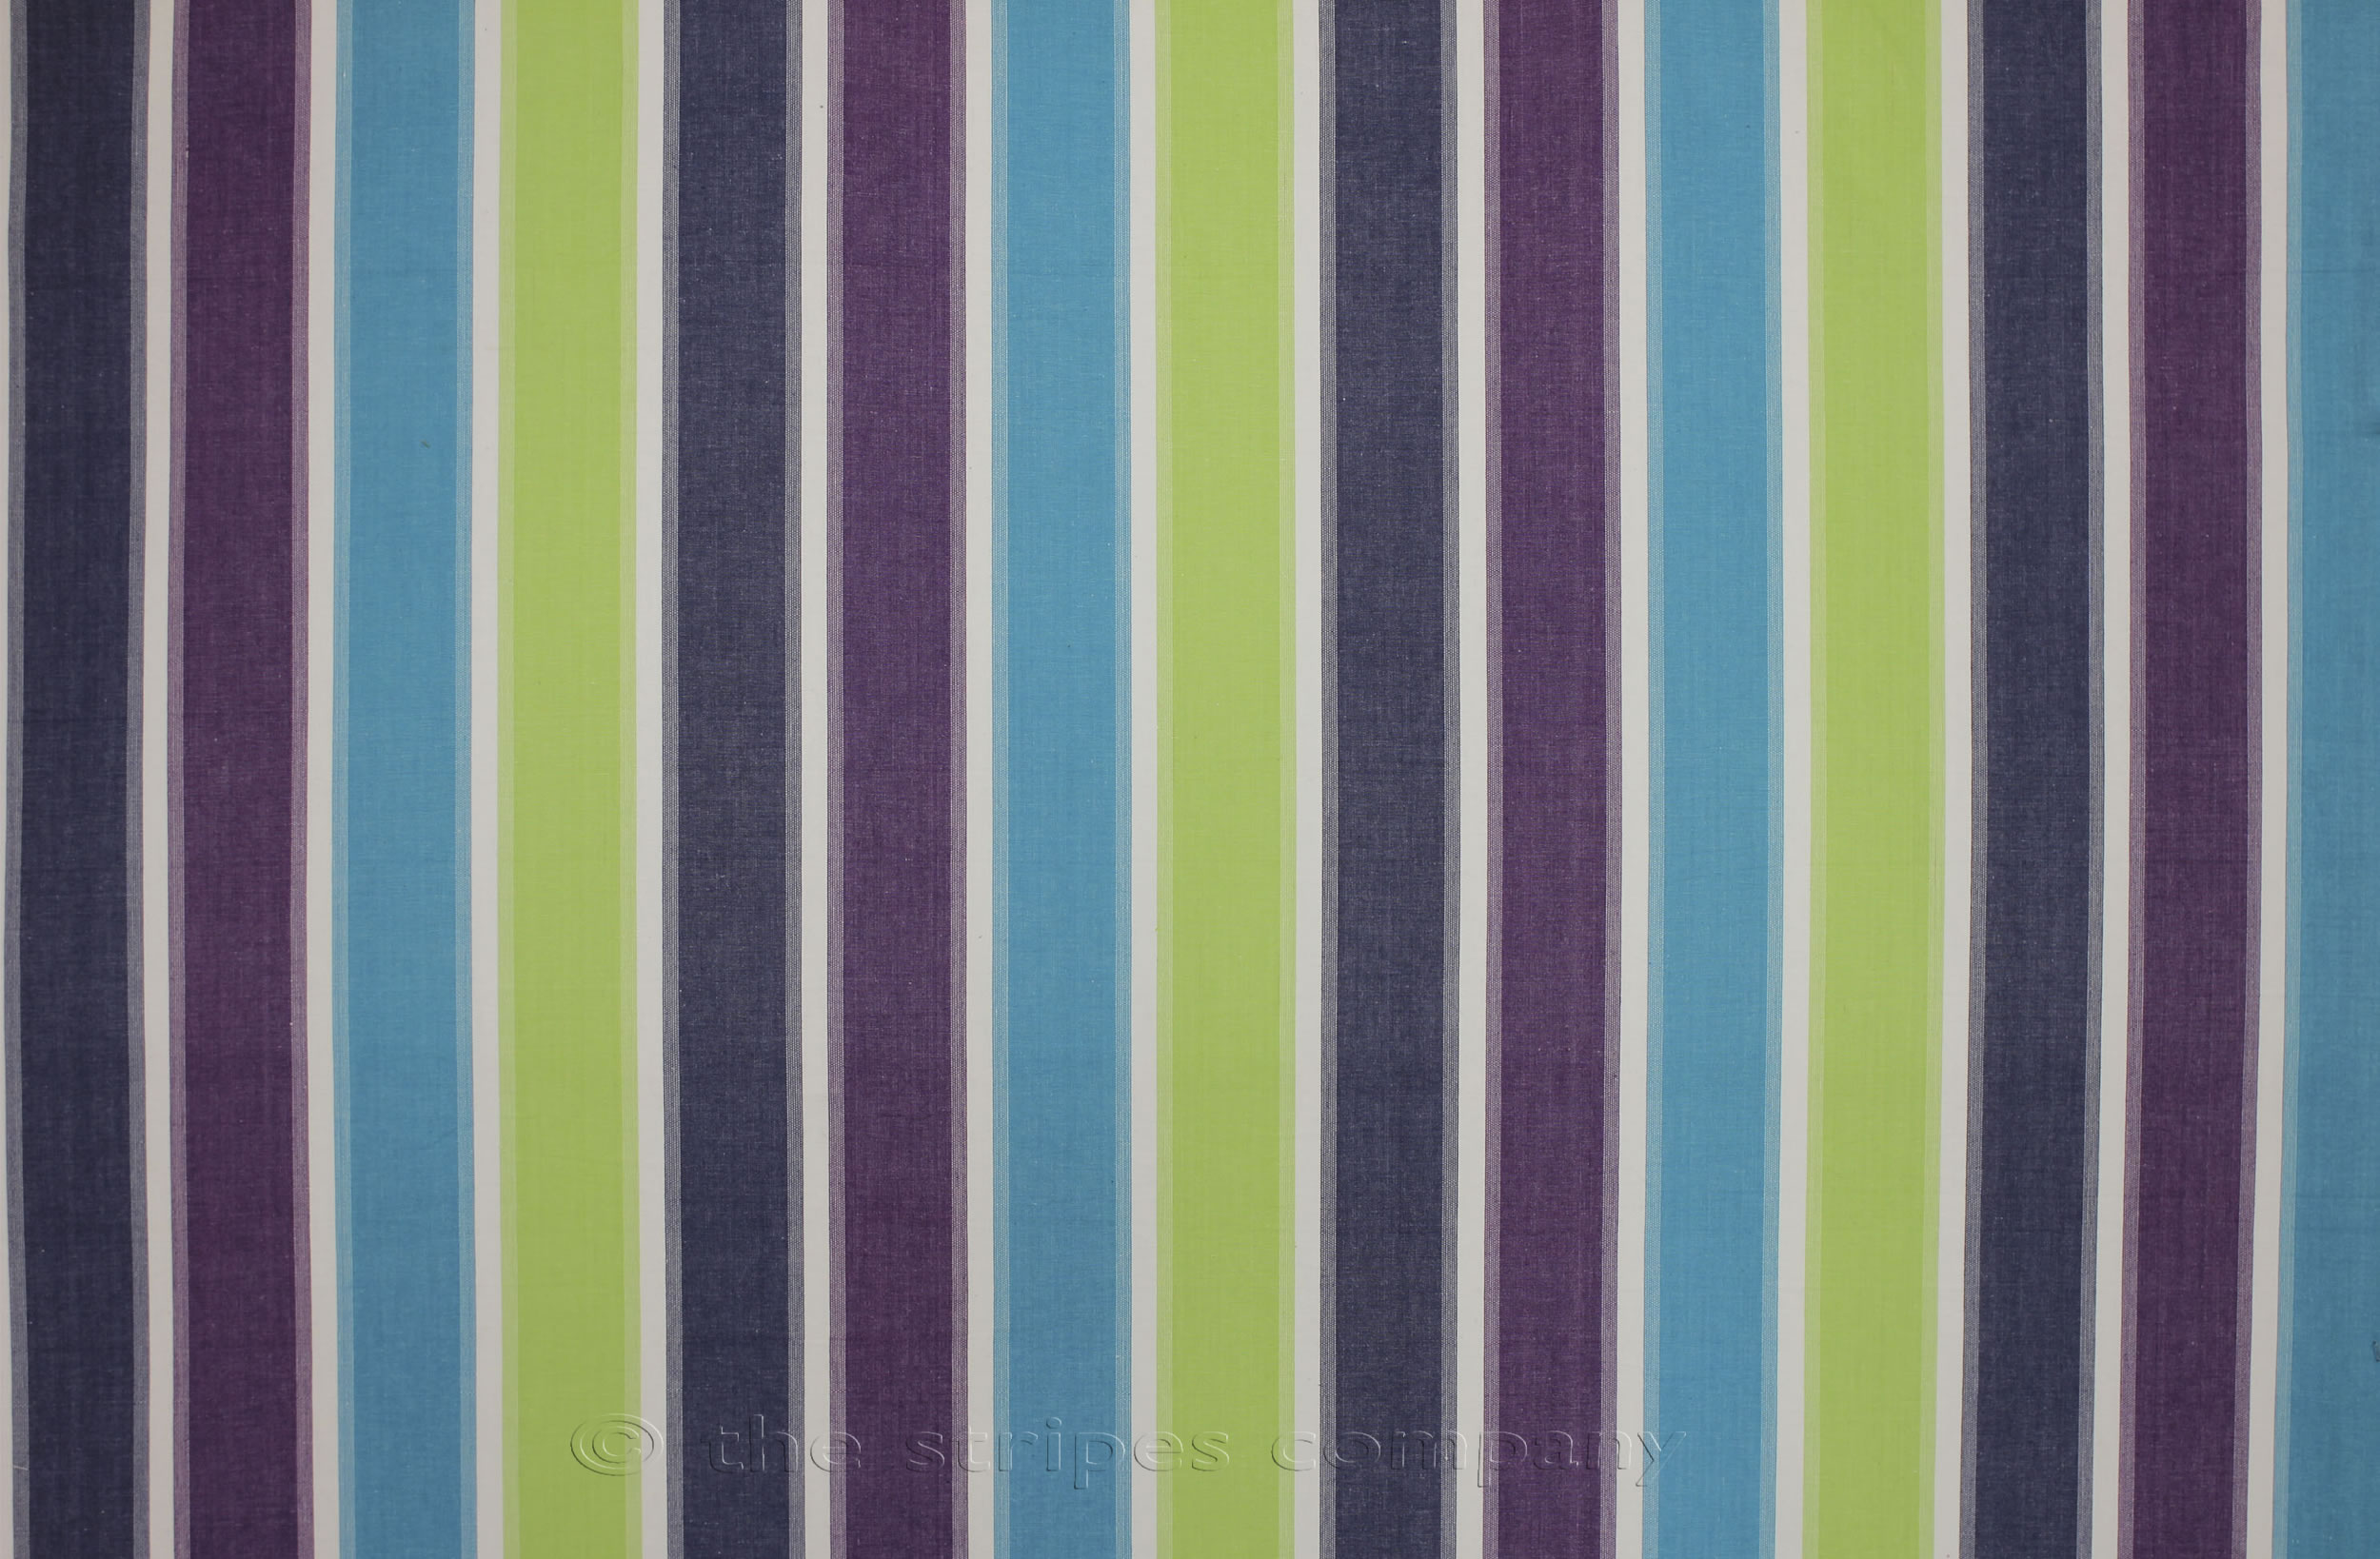 Striped Oilcloth Fabrics | Lime, Turquoise, Navy Stripe Wipe Clean Oilcloth Coated Fabrics